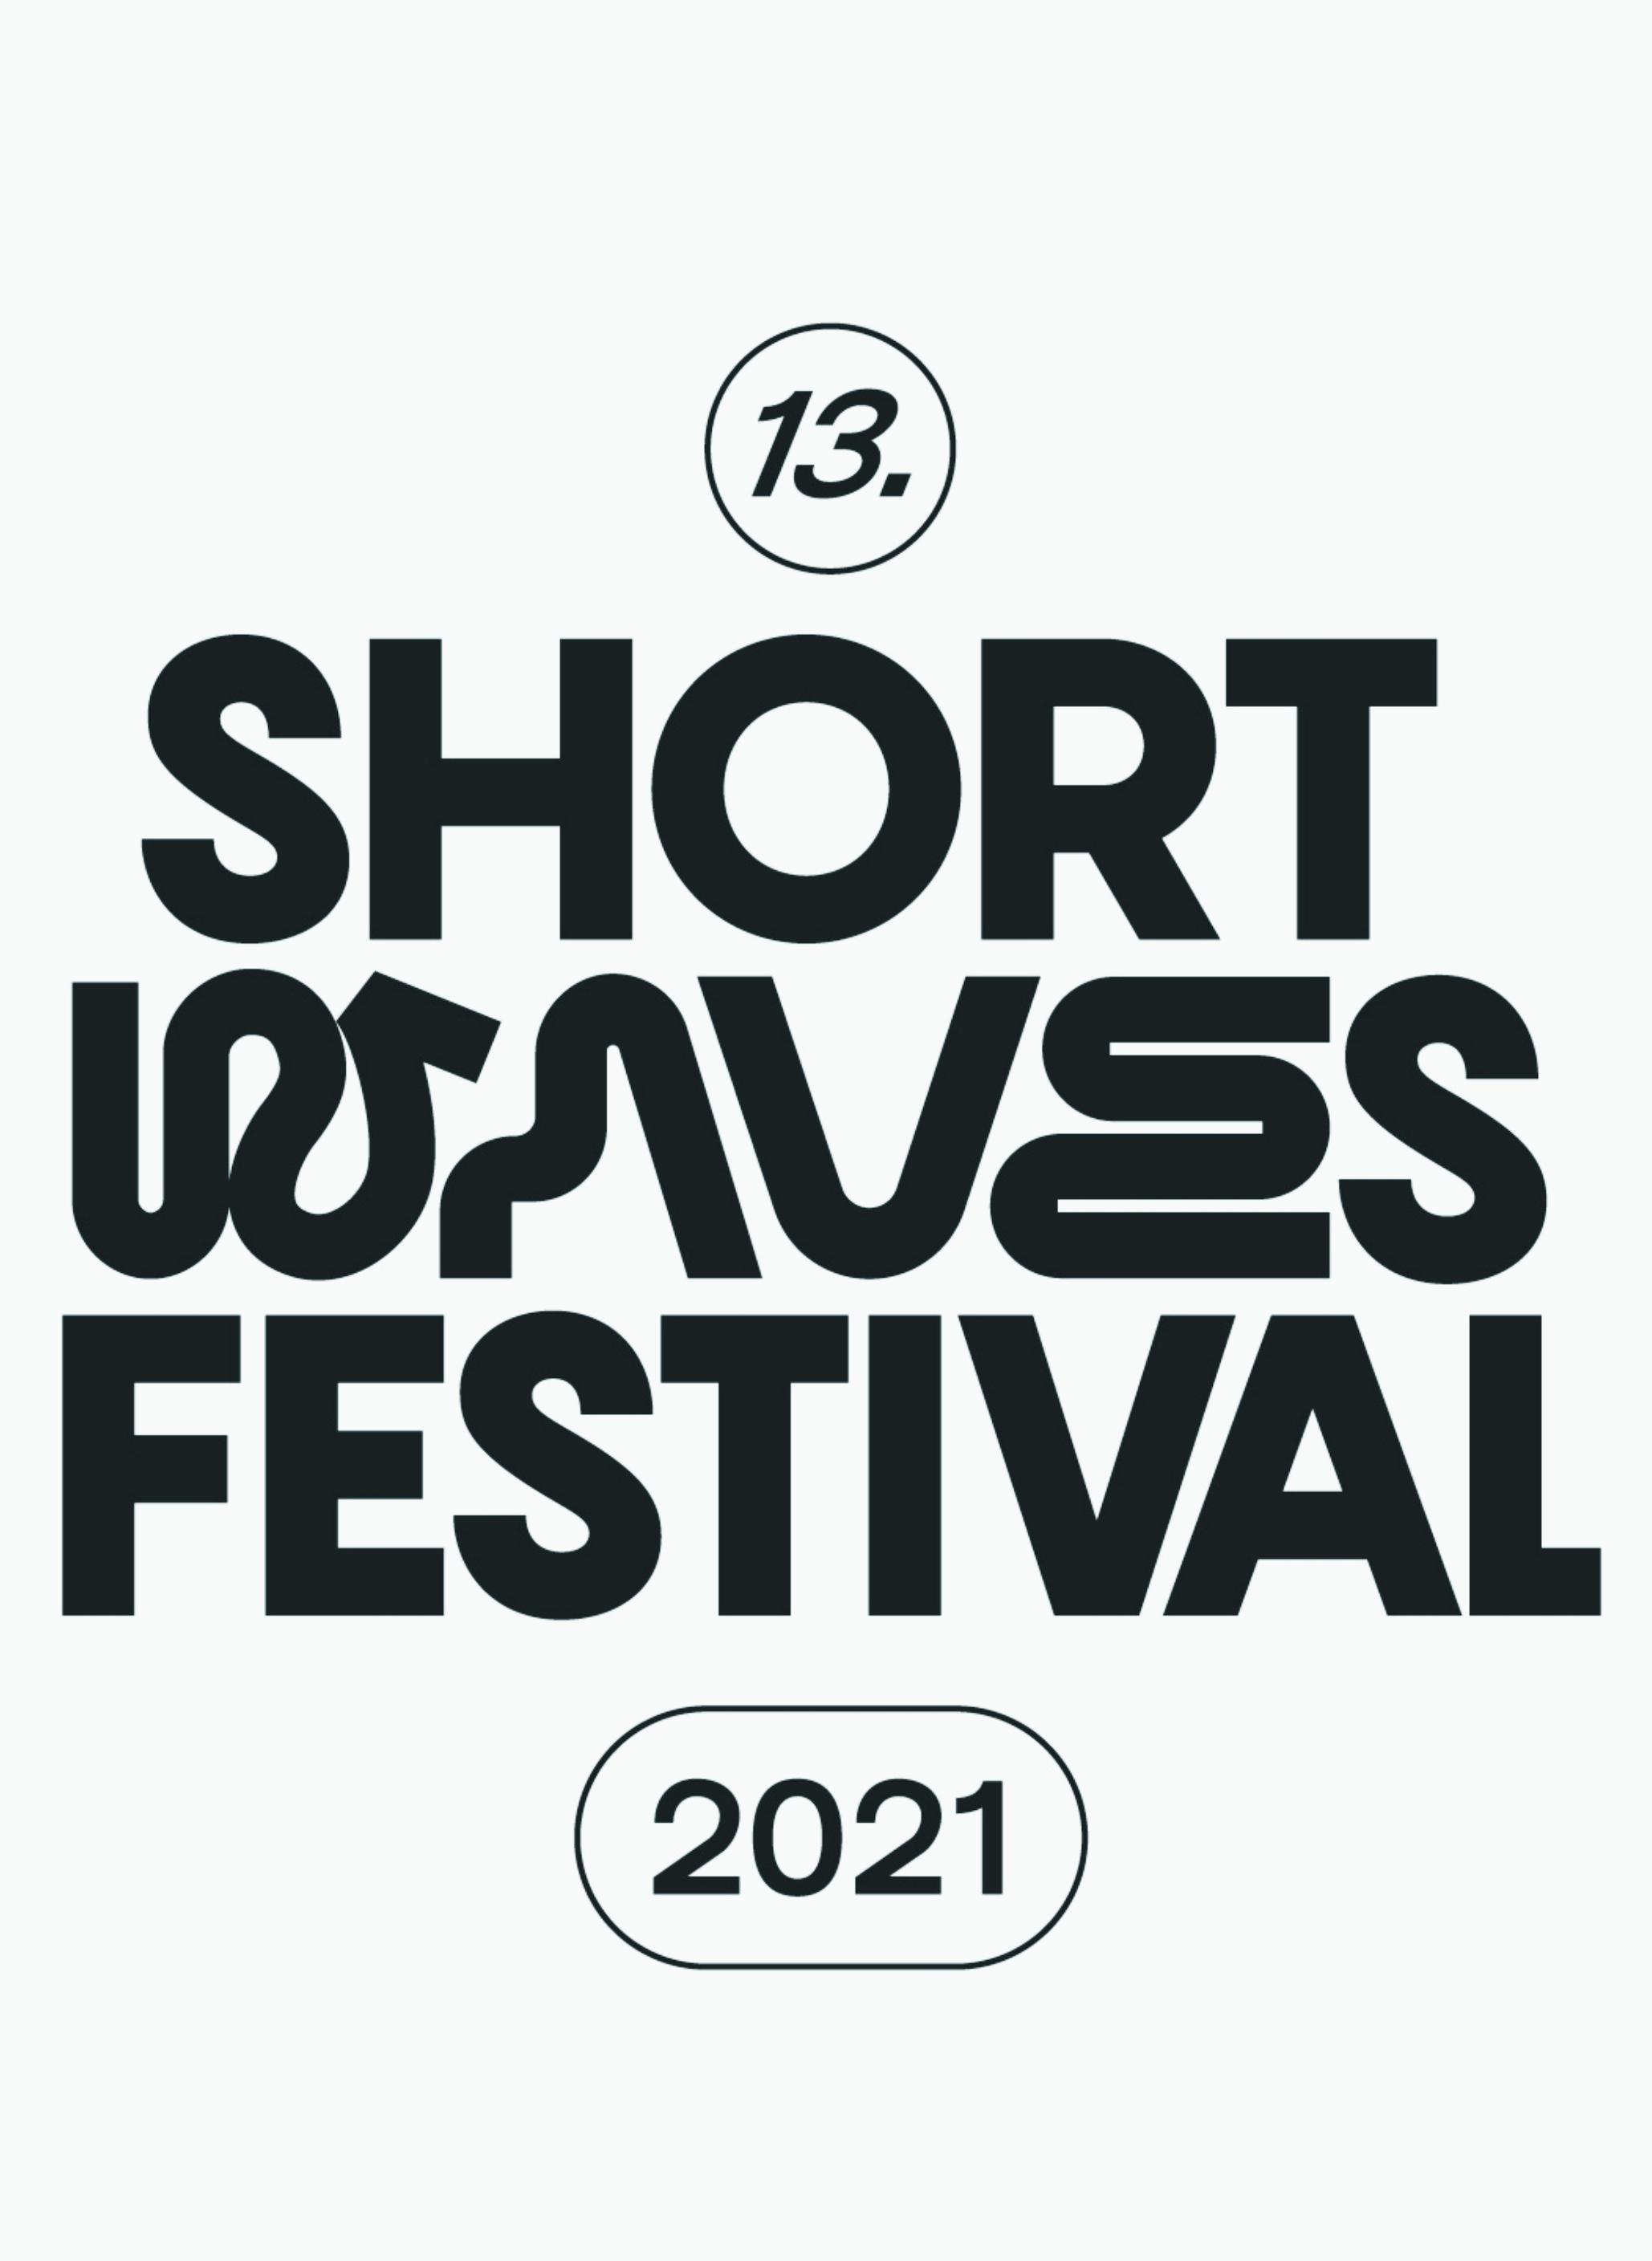 Short Waves Festival 2021 - SWF Awarded: Polish Competitions